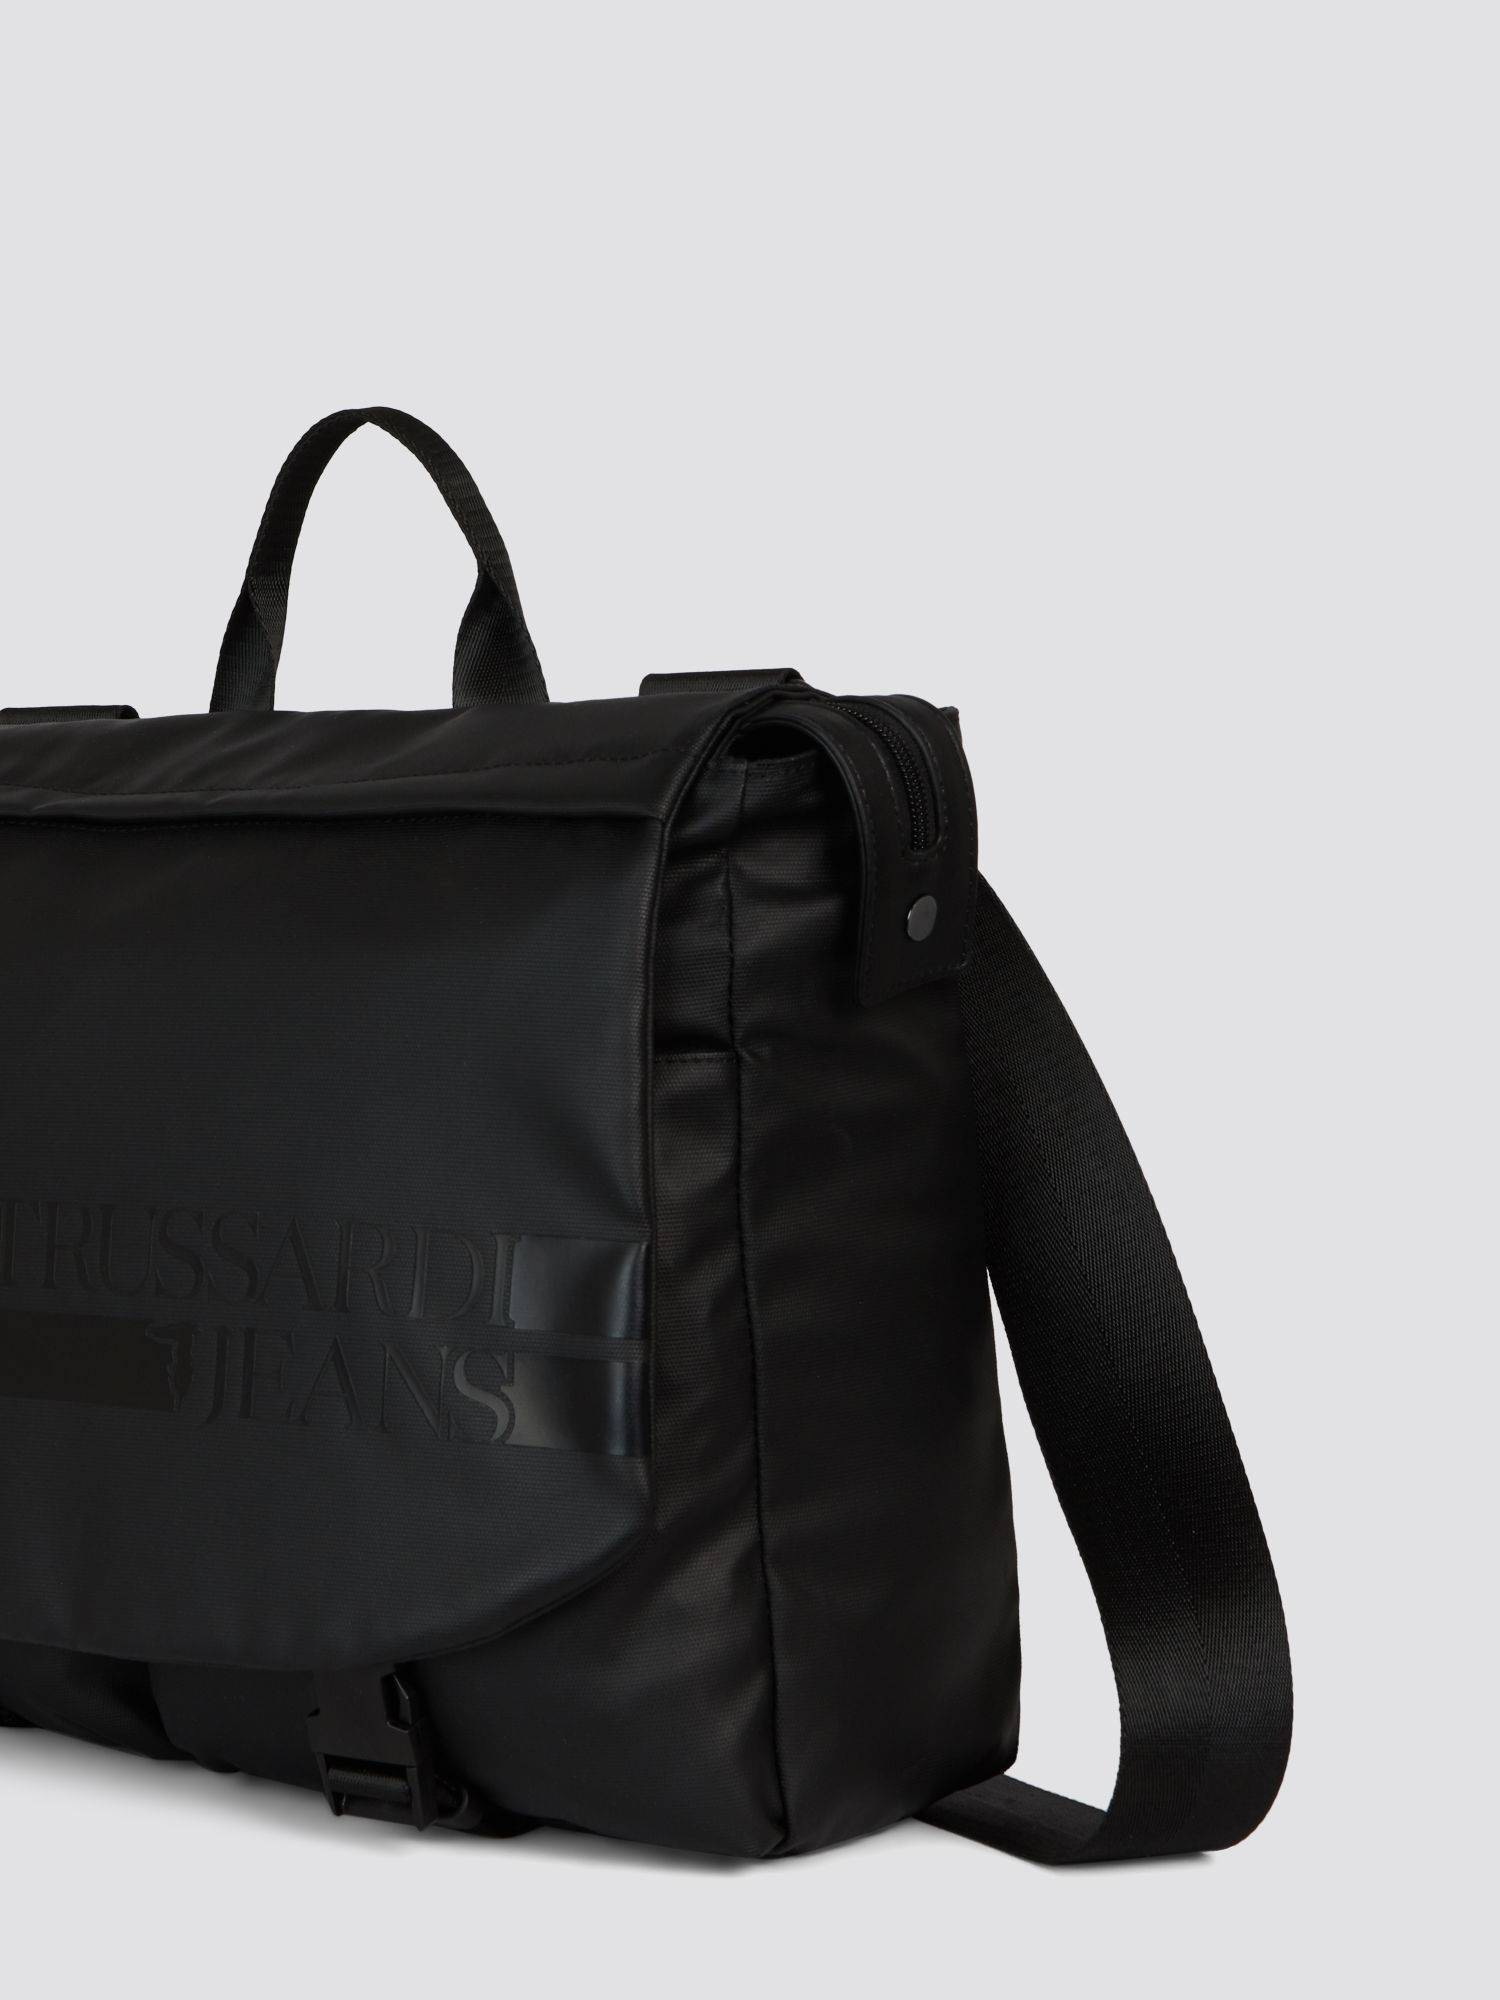 Cartella Turati Business medium in nylon e cordura